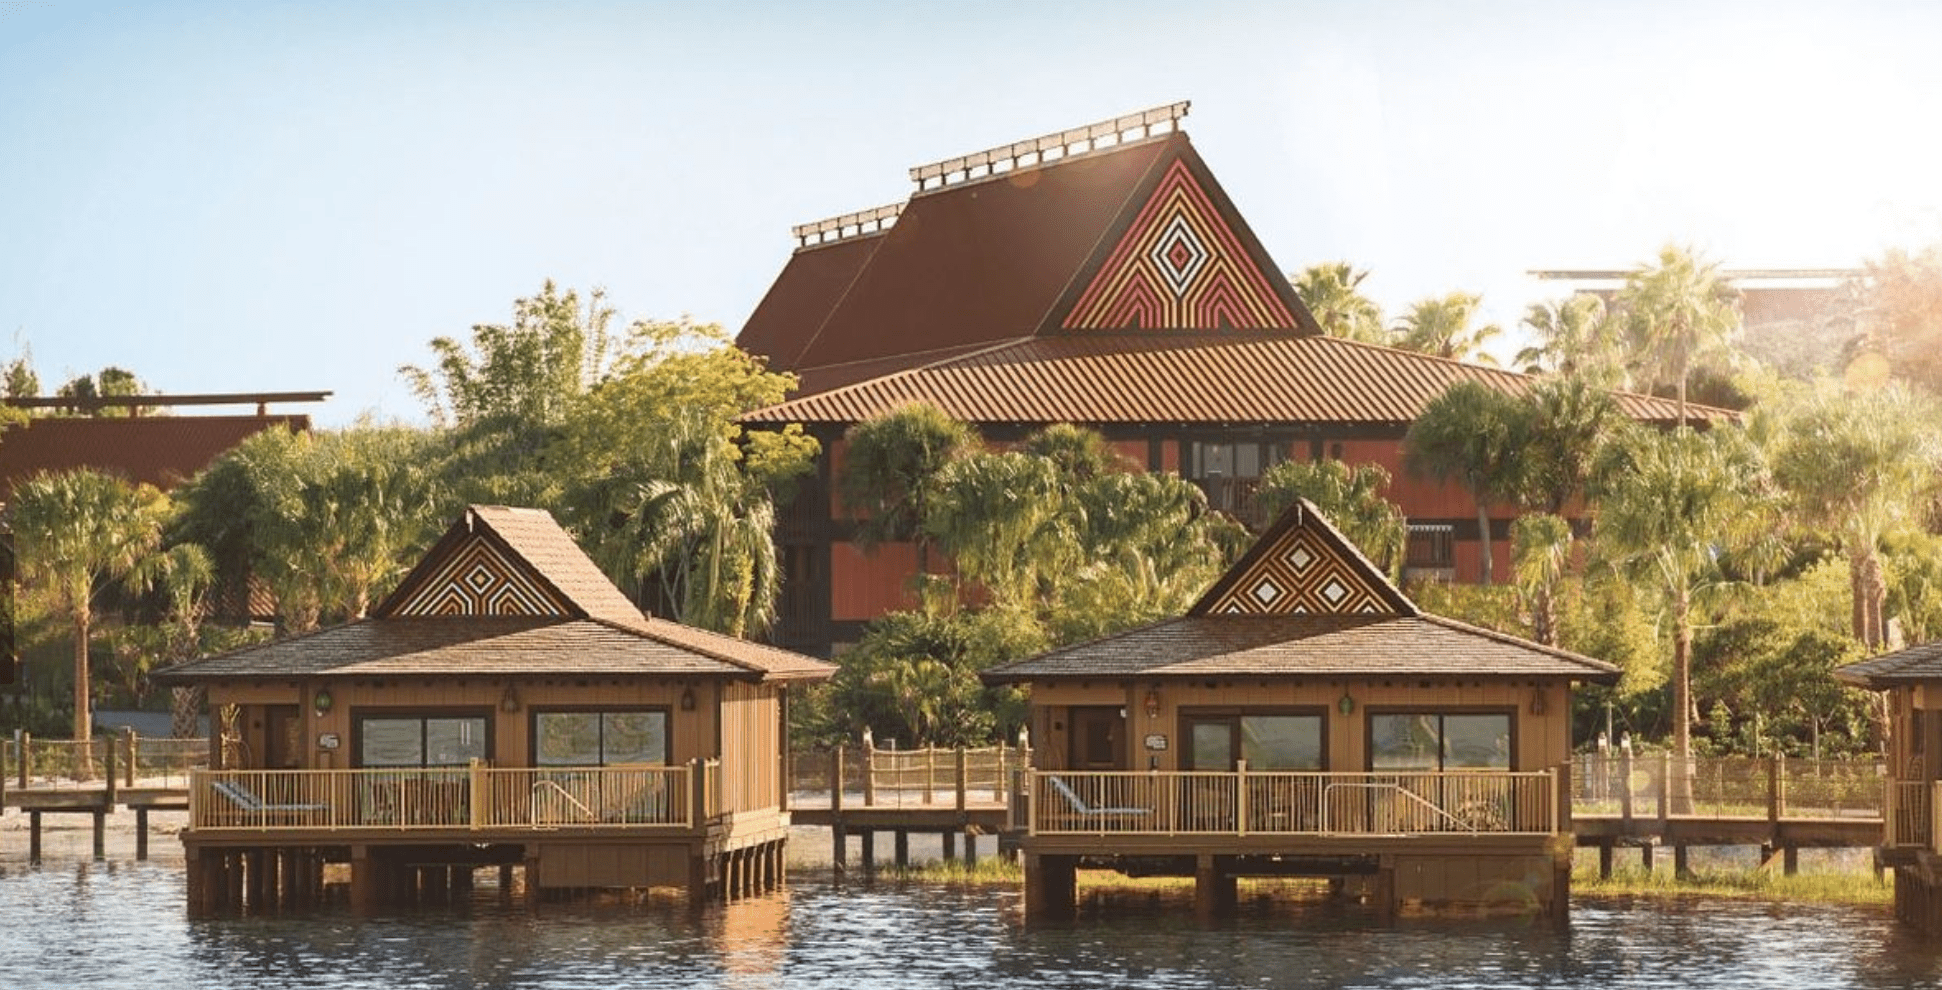 Awe Inspiring The 9 Best Disney World Villas Of 2019 Download Free Architecture Designs Scobabritishbridgeorg